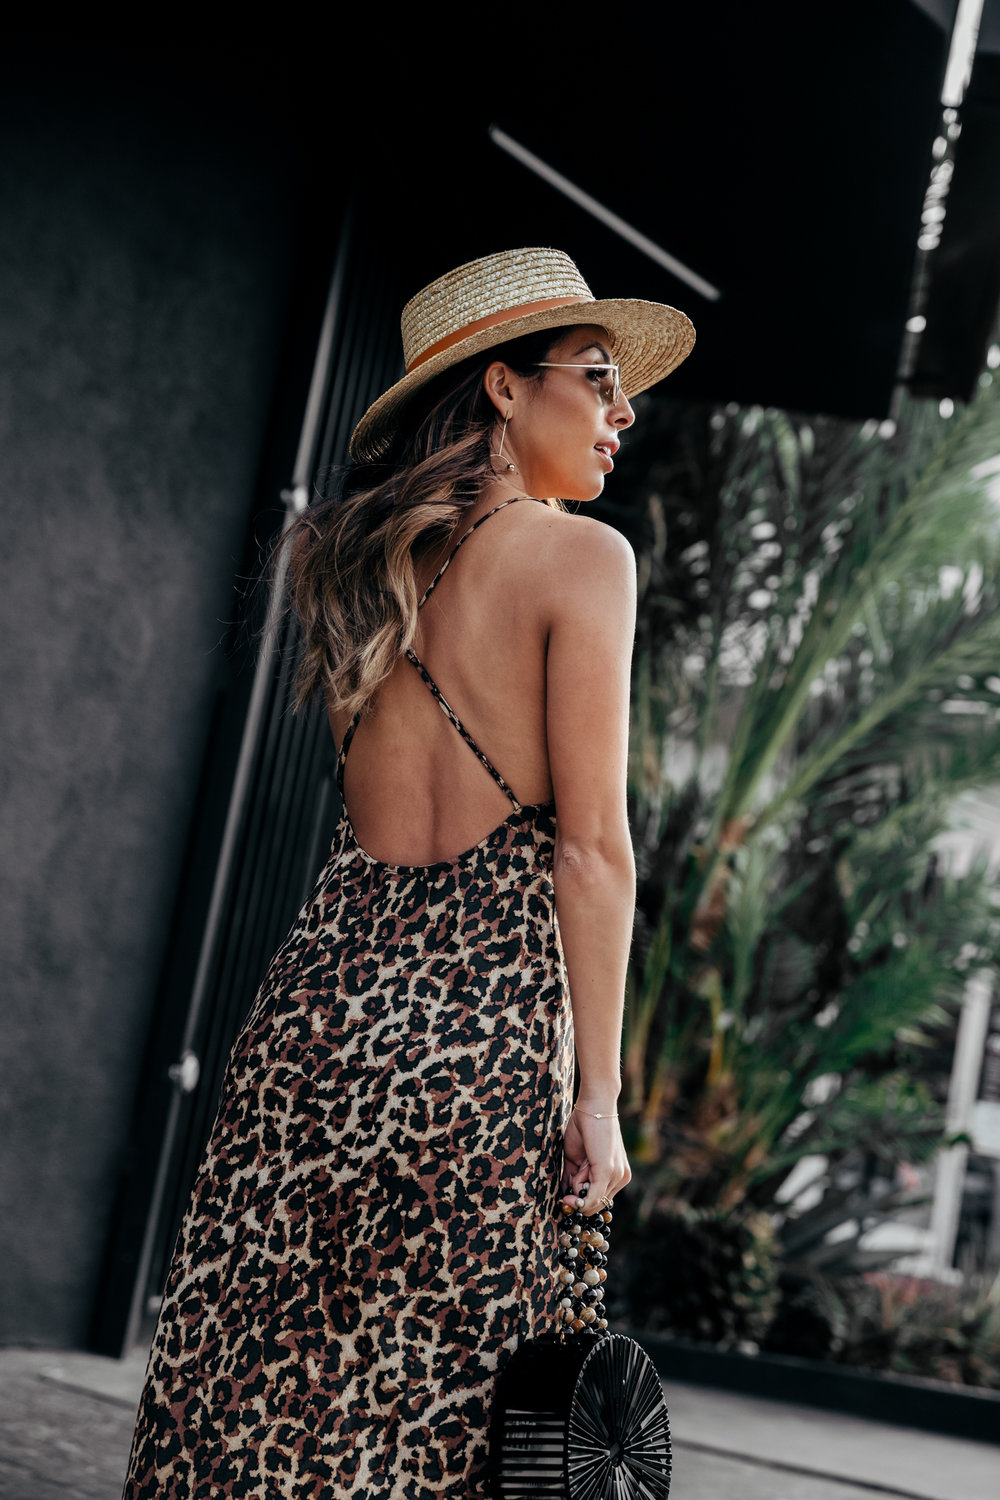 Leopard Slip Dress from Endless Summer